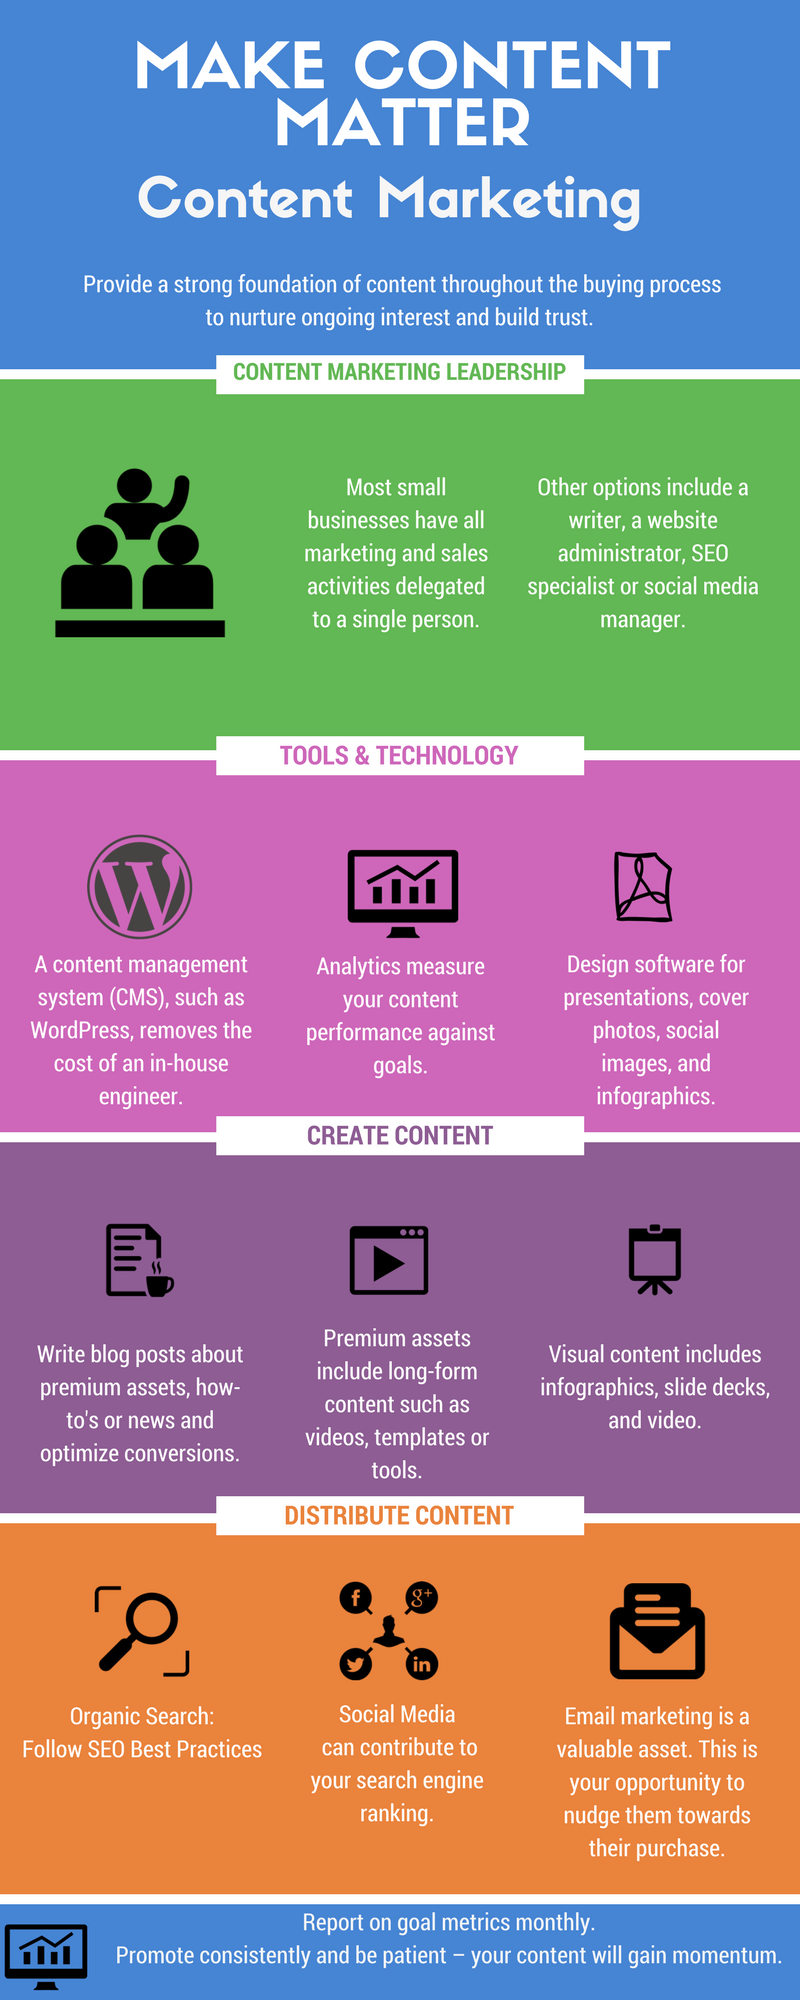 Make Content Matter: Content Marketing Infographic